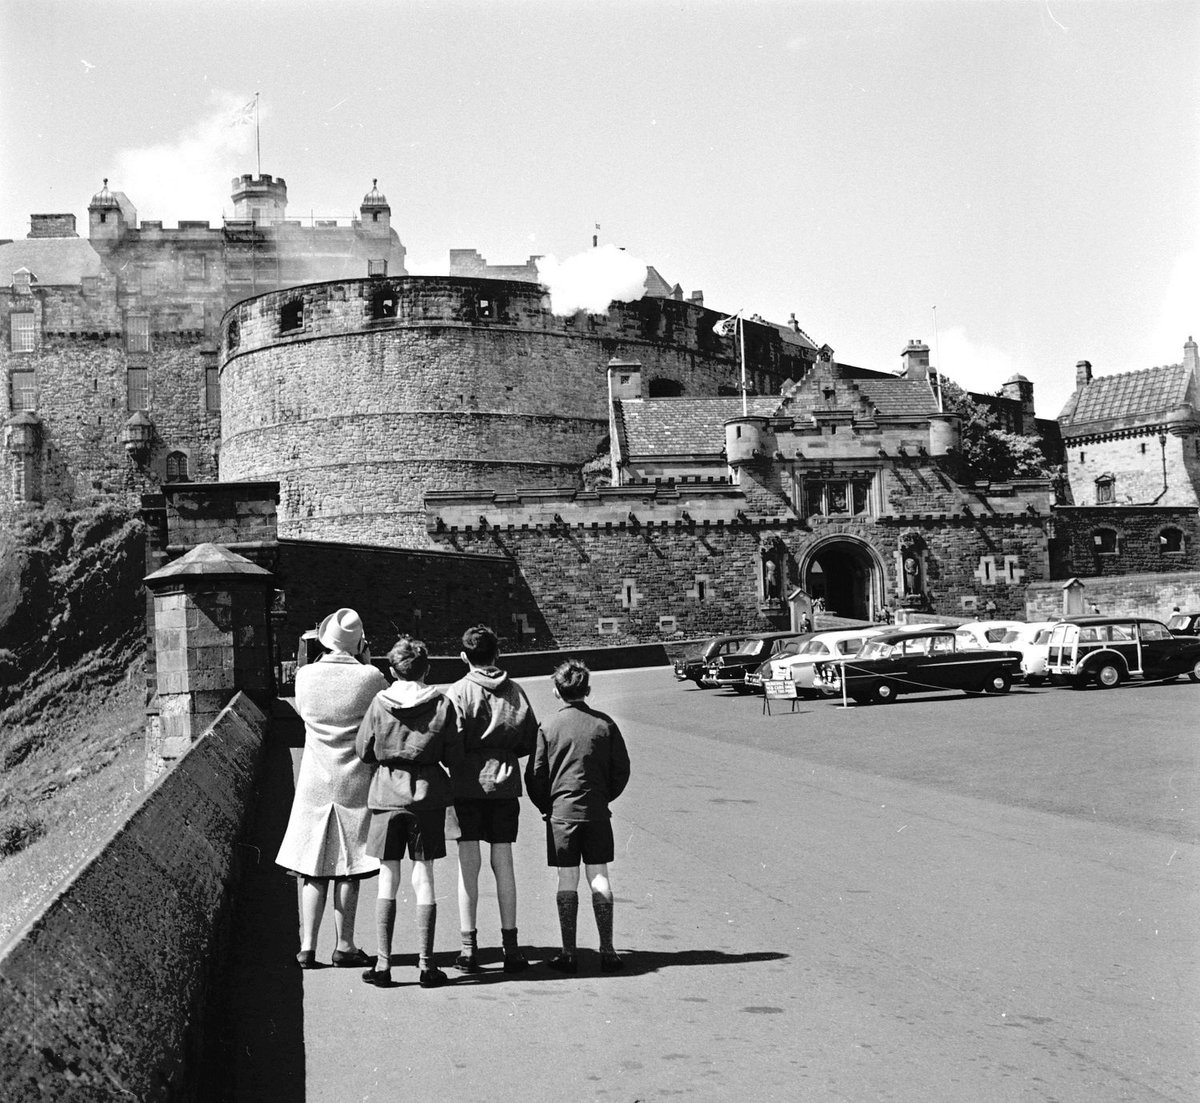 A family day out in 1964, watching a twenty-one-gun salute from the esplanade. Image kindly provided by our friends @Scranlife. #ThrowbackThursday